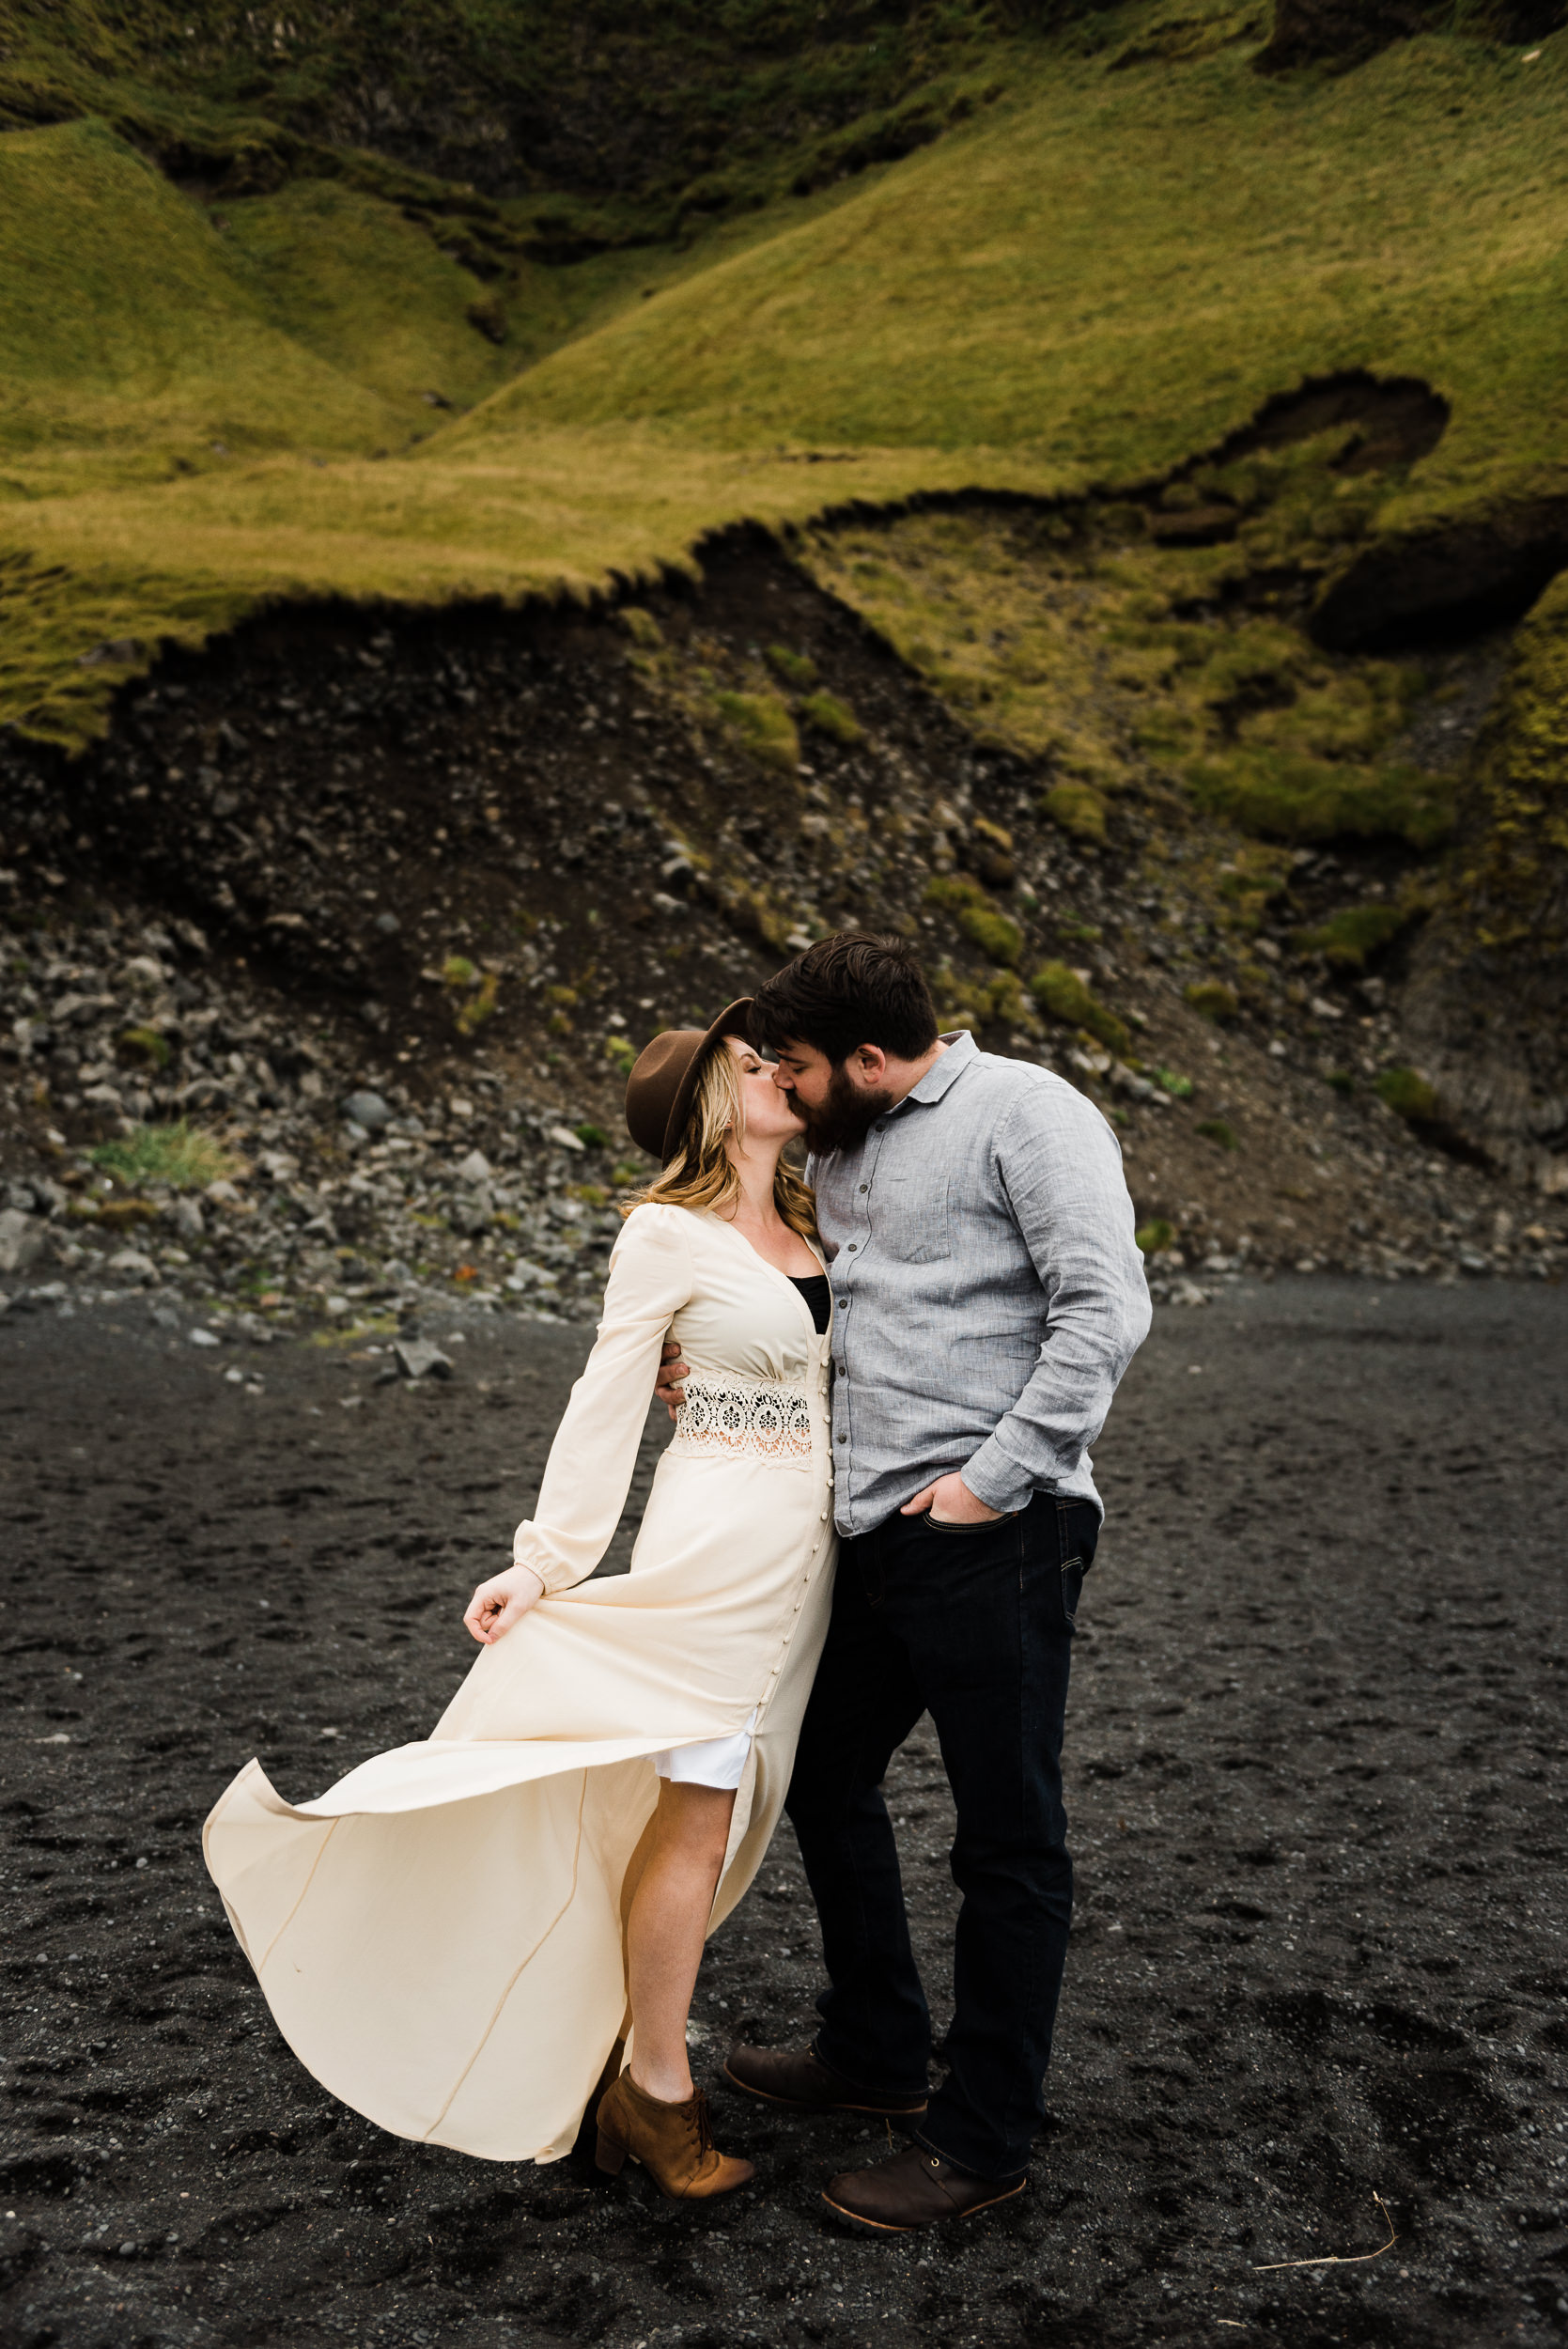 A couple on their honeymoon in Iceland, stand side by side, kissing, hands around each others' waists. Black sand below them, lush grasses behind them on the rocky hillsides. A woman at left, wearing a flowing off-white dress, hat, and boots. A man at right with beard, wearing a buttoned shirt, jeans, and boots.